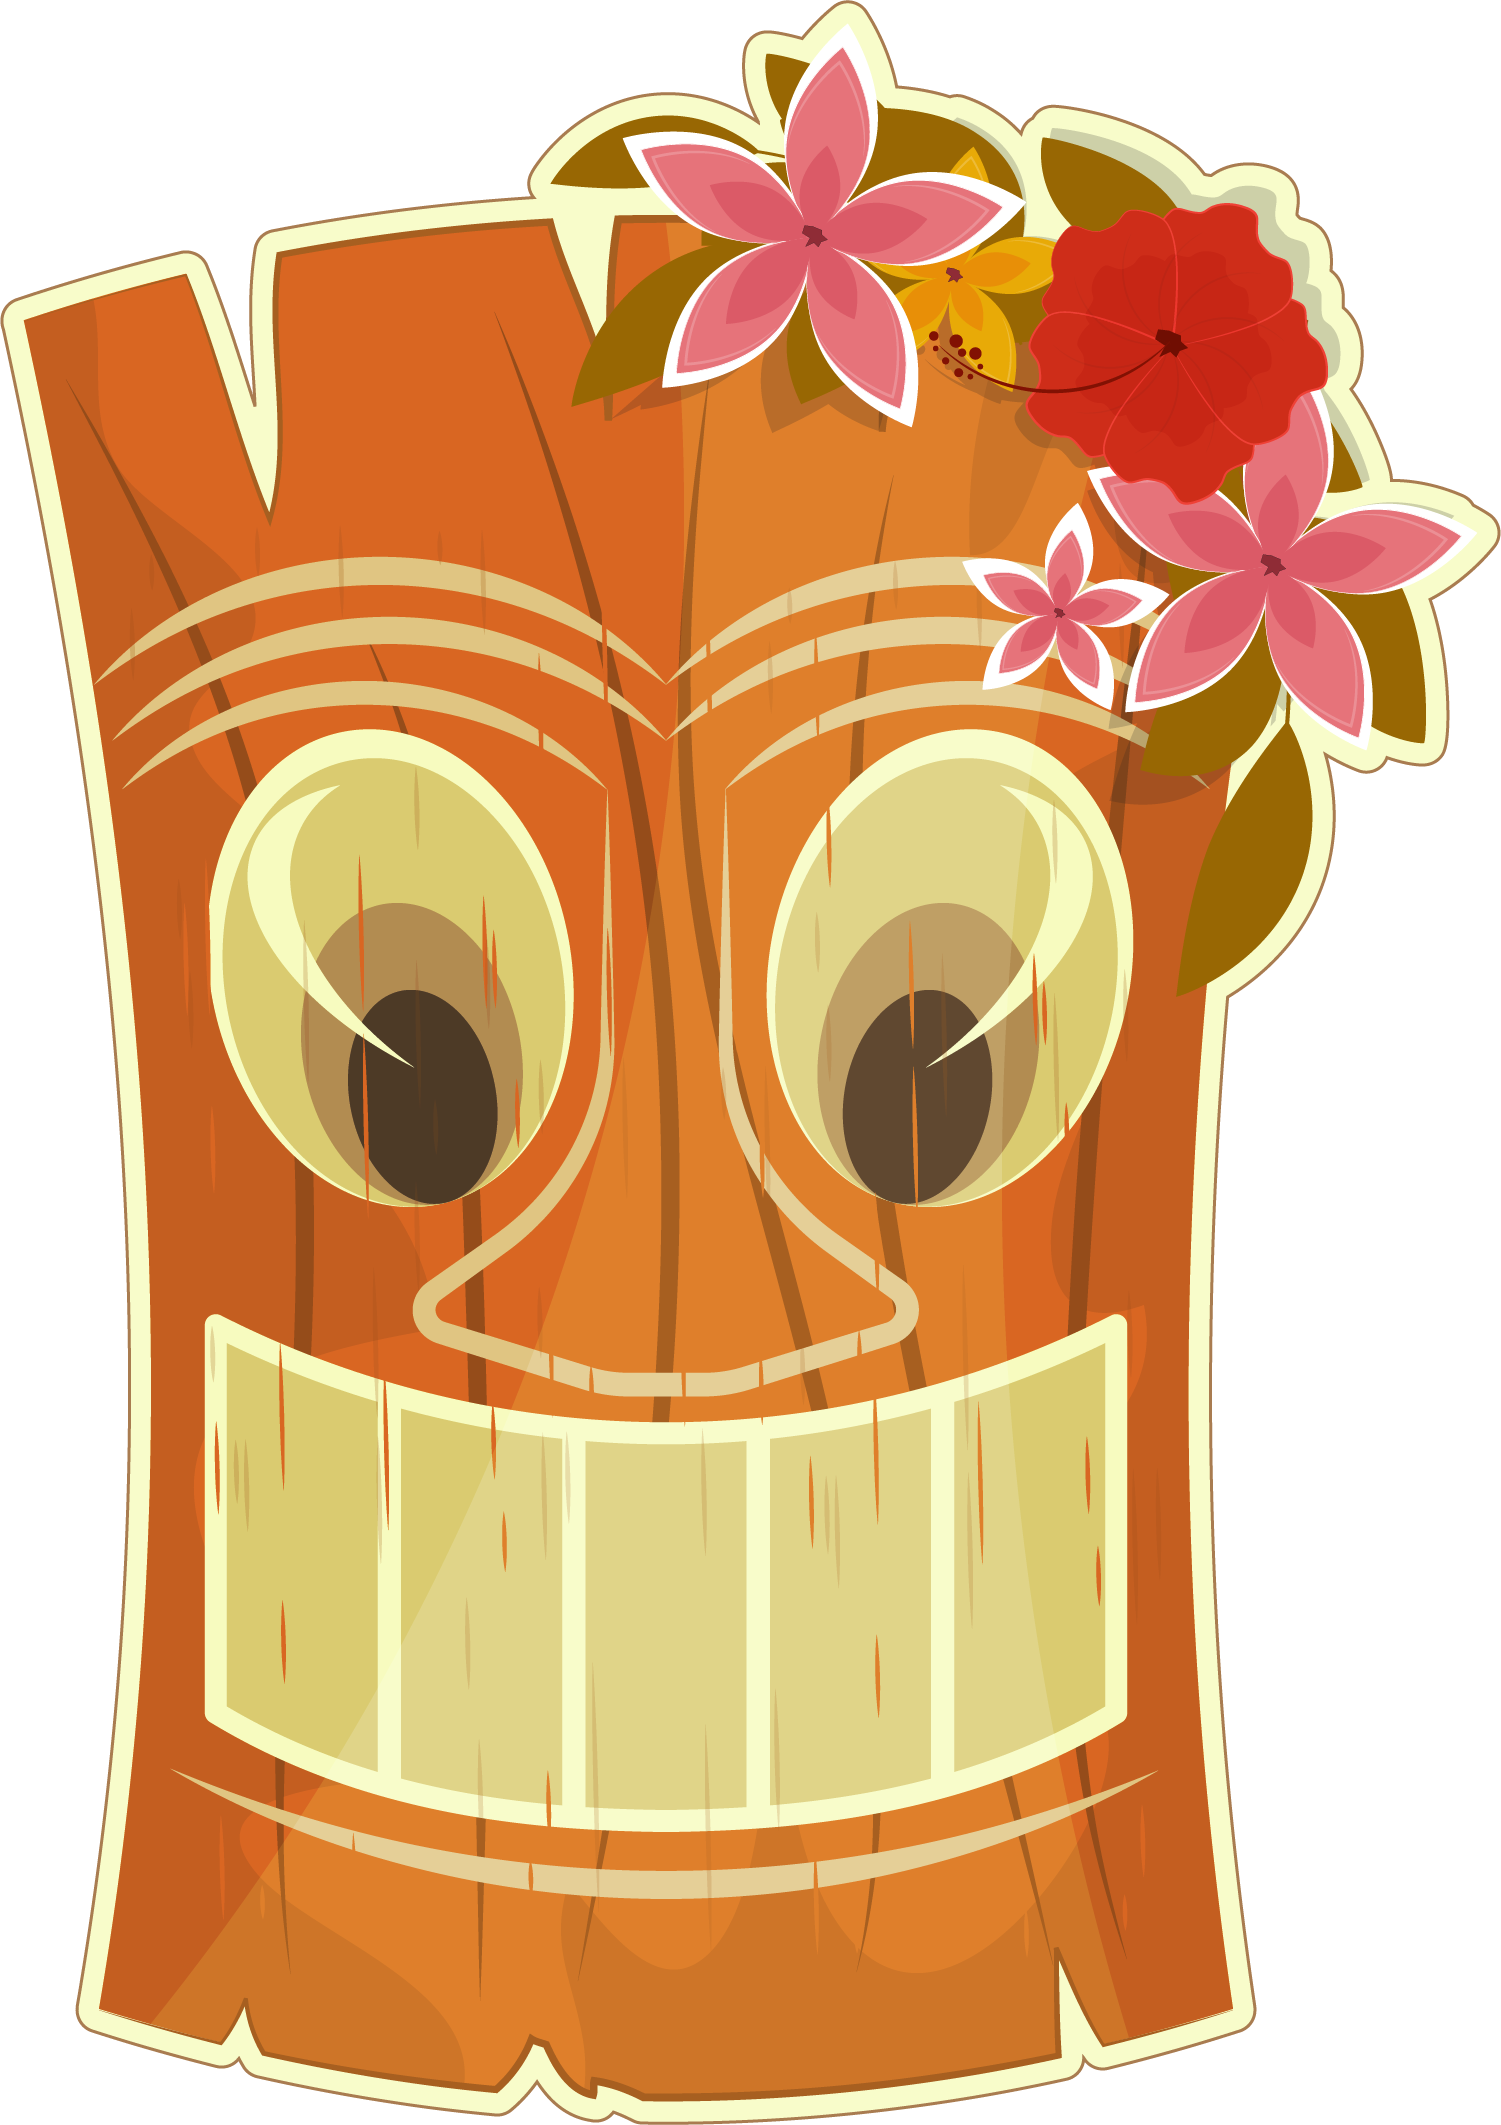 Brown apple clipart clip black and white download Hawaii Tiki bar Clip art - Hand painted brown mask 1501*2125 ... clip black and white download